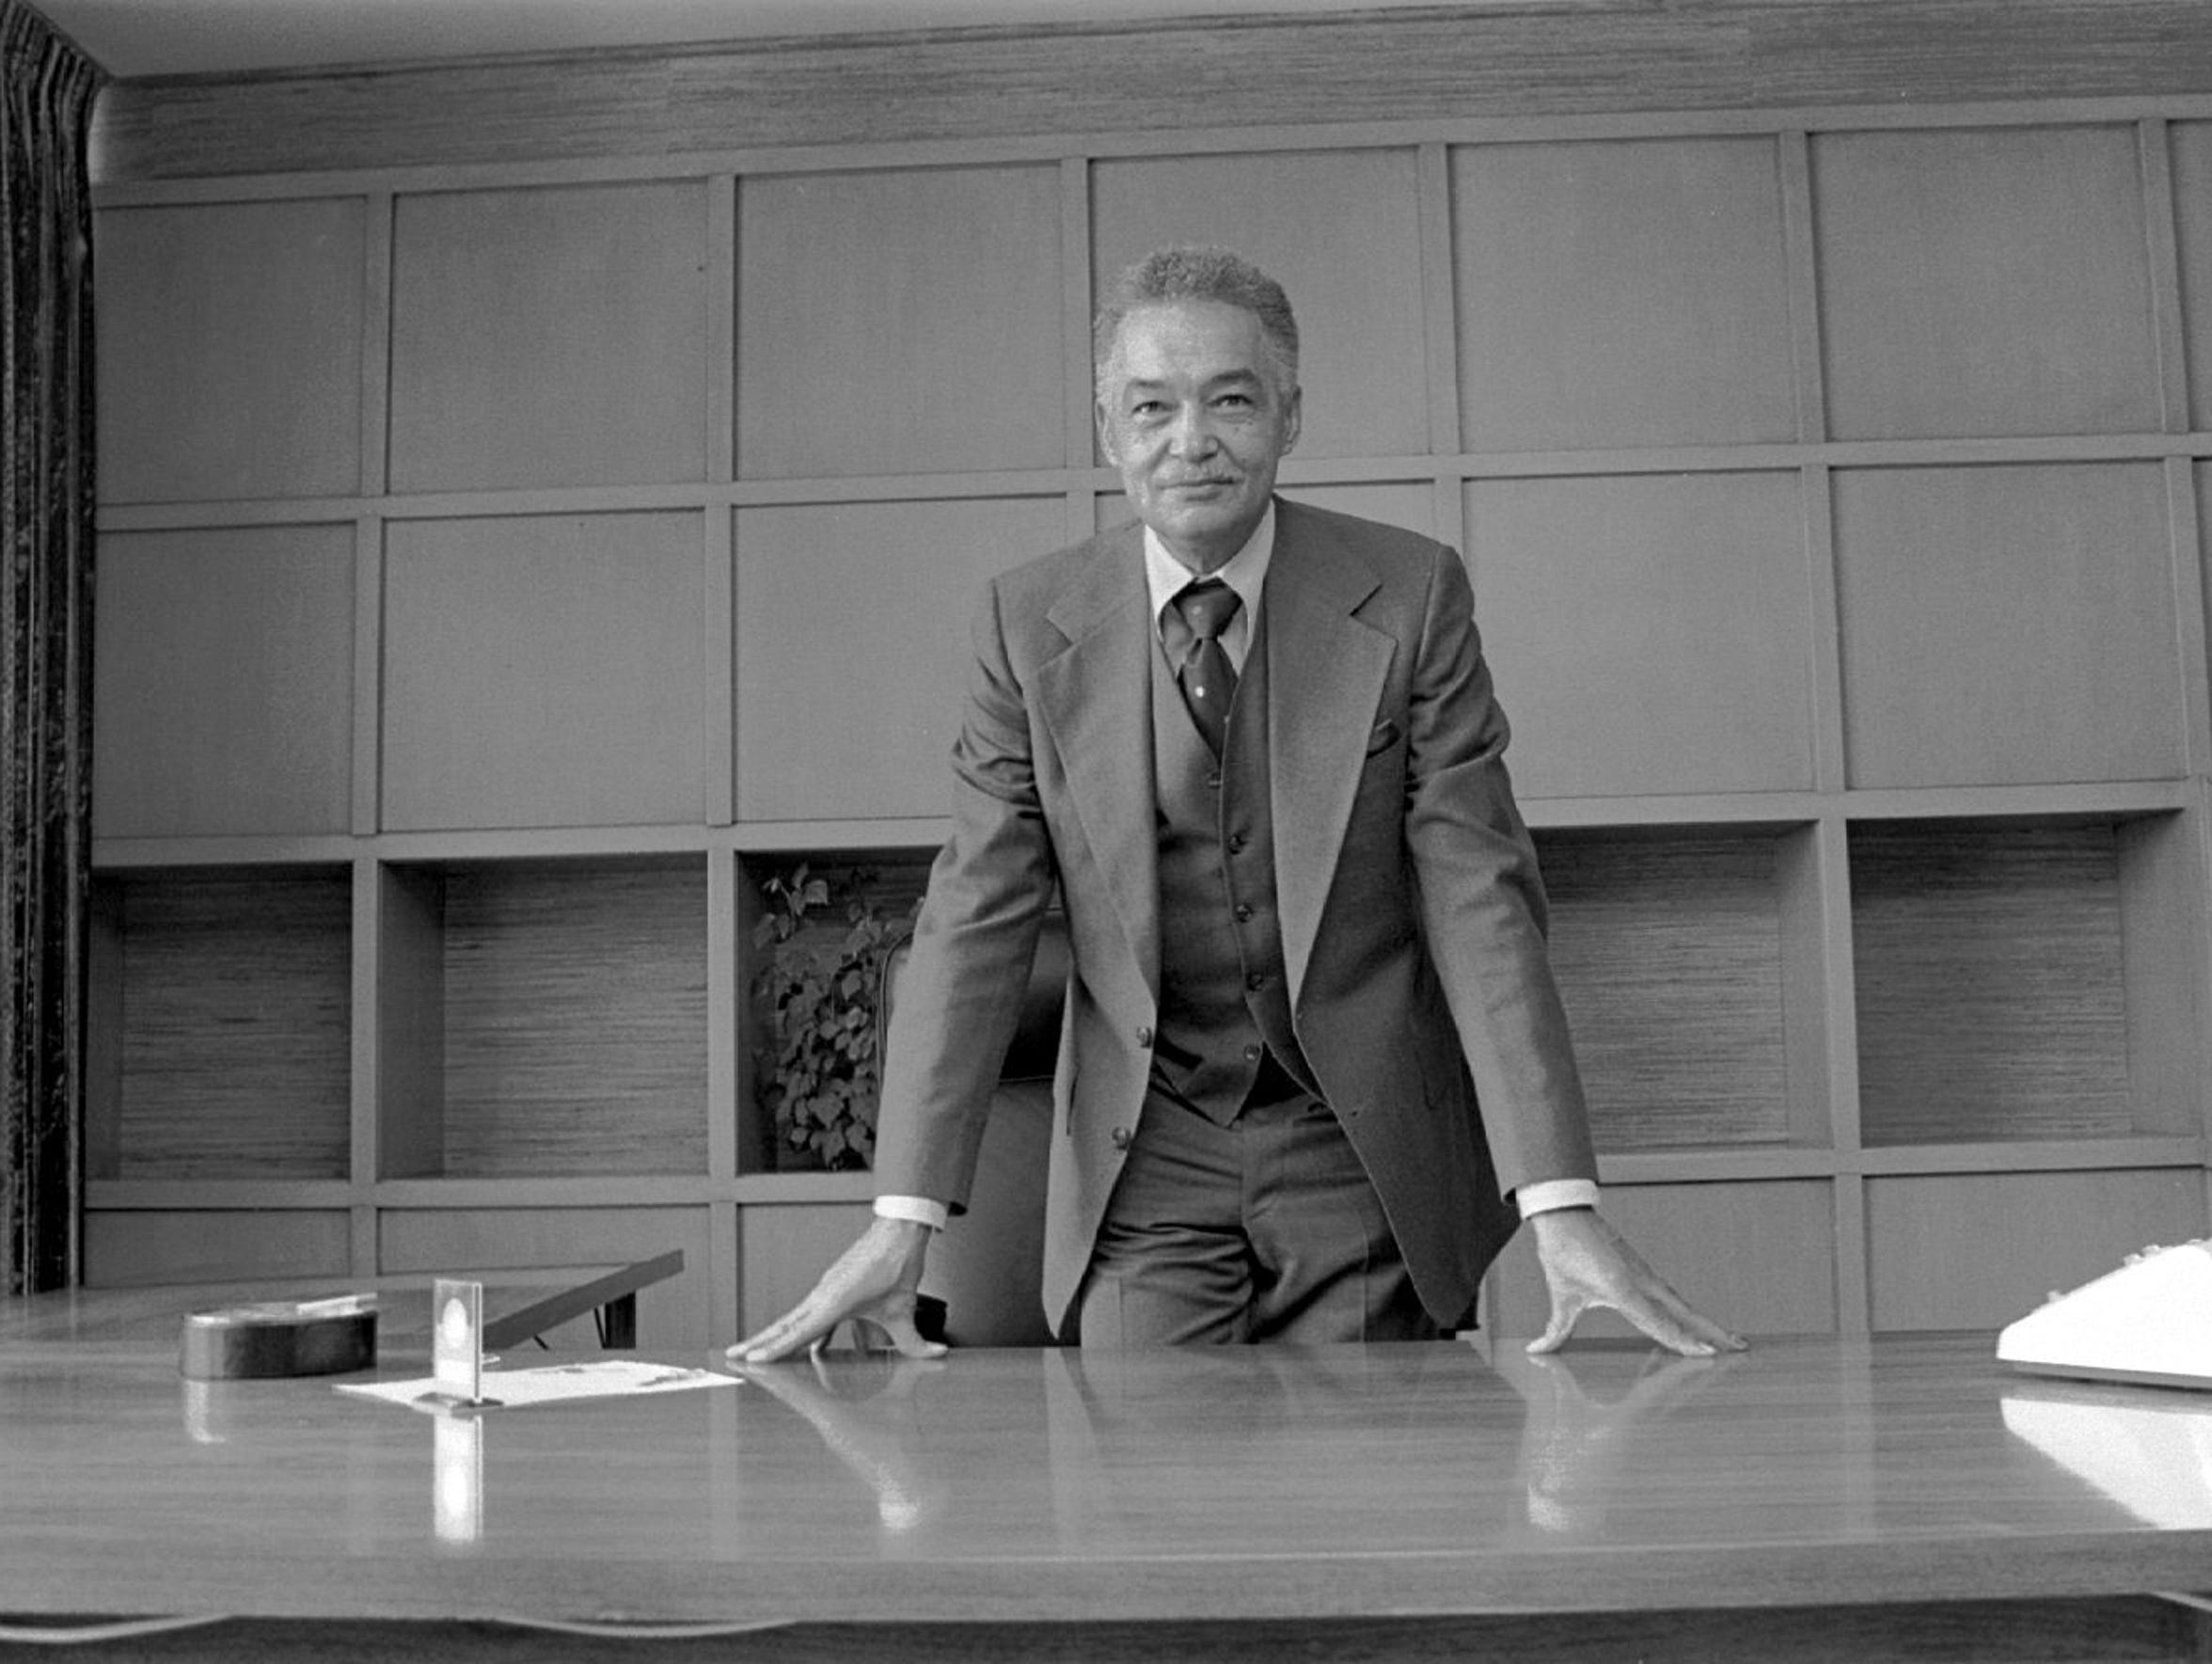 Detroit Mayor Coleman A. Young on his first day in